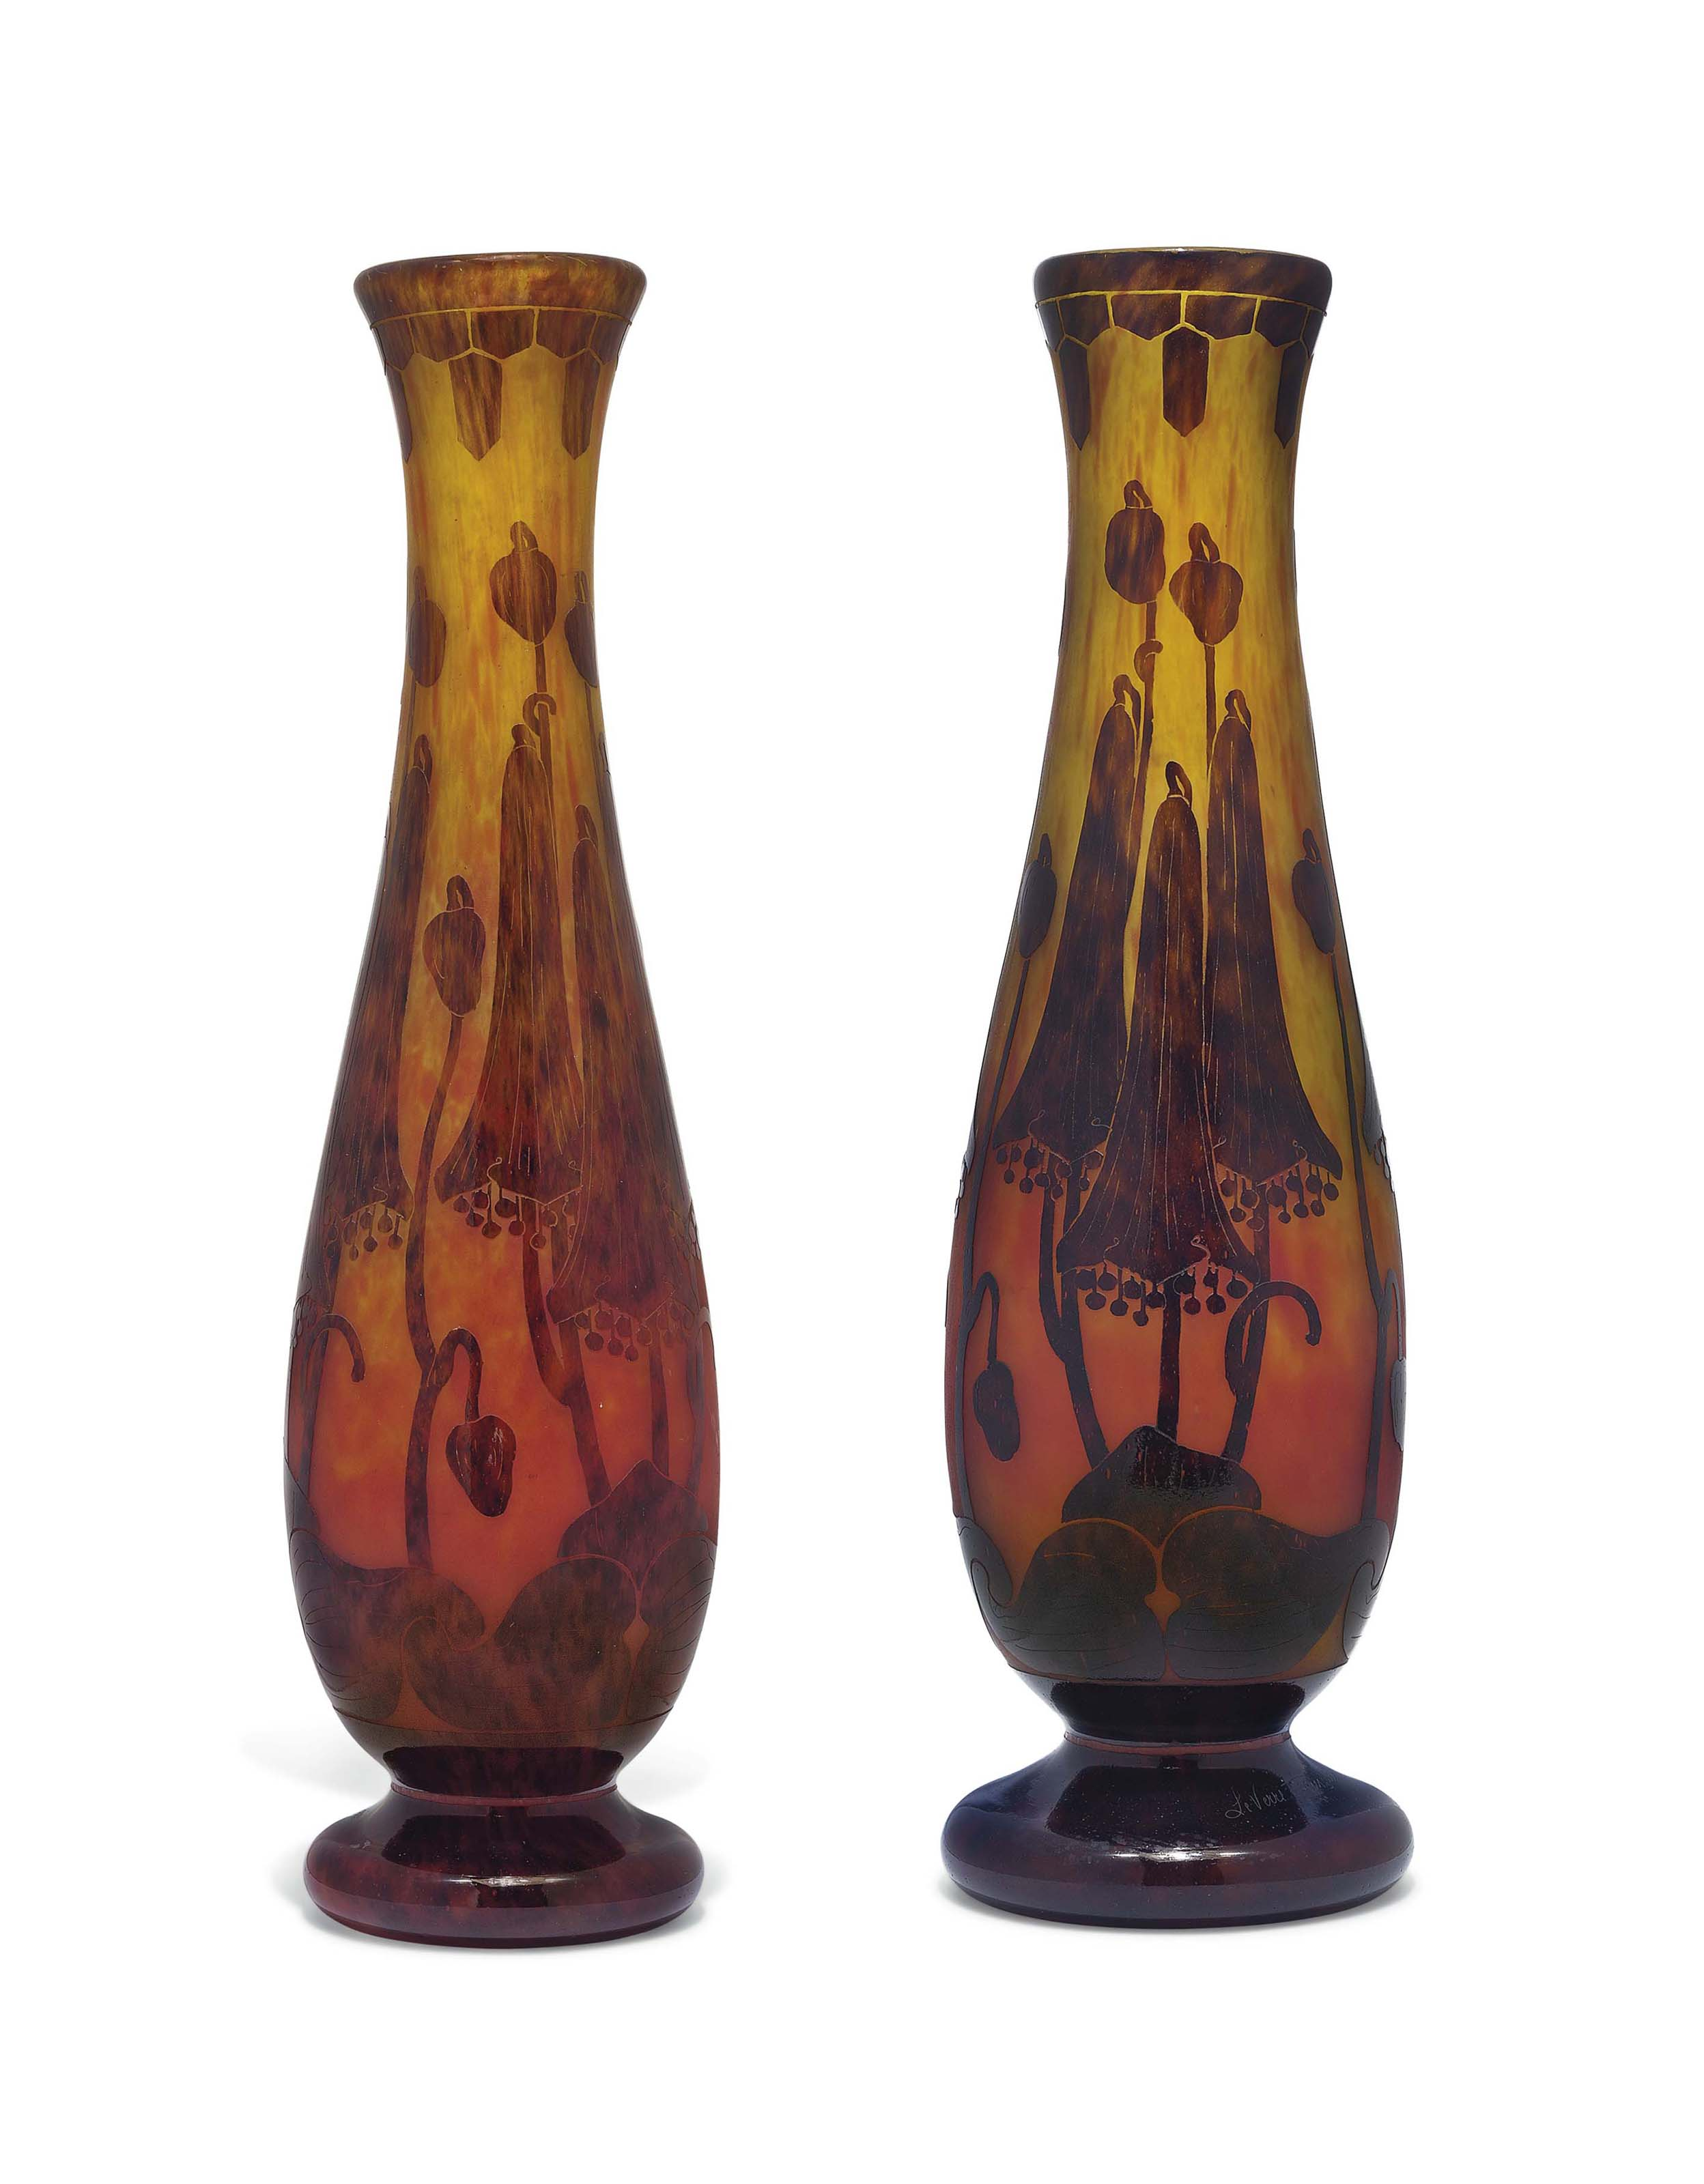 A NEAR PAIR OF LE VERRE FRANCAIS ART DECO CAMEO GLASS VASES OVERLAID AND ACID-ETCHED WITH BELL-SHAPED FLOWERS